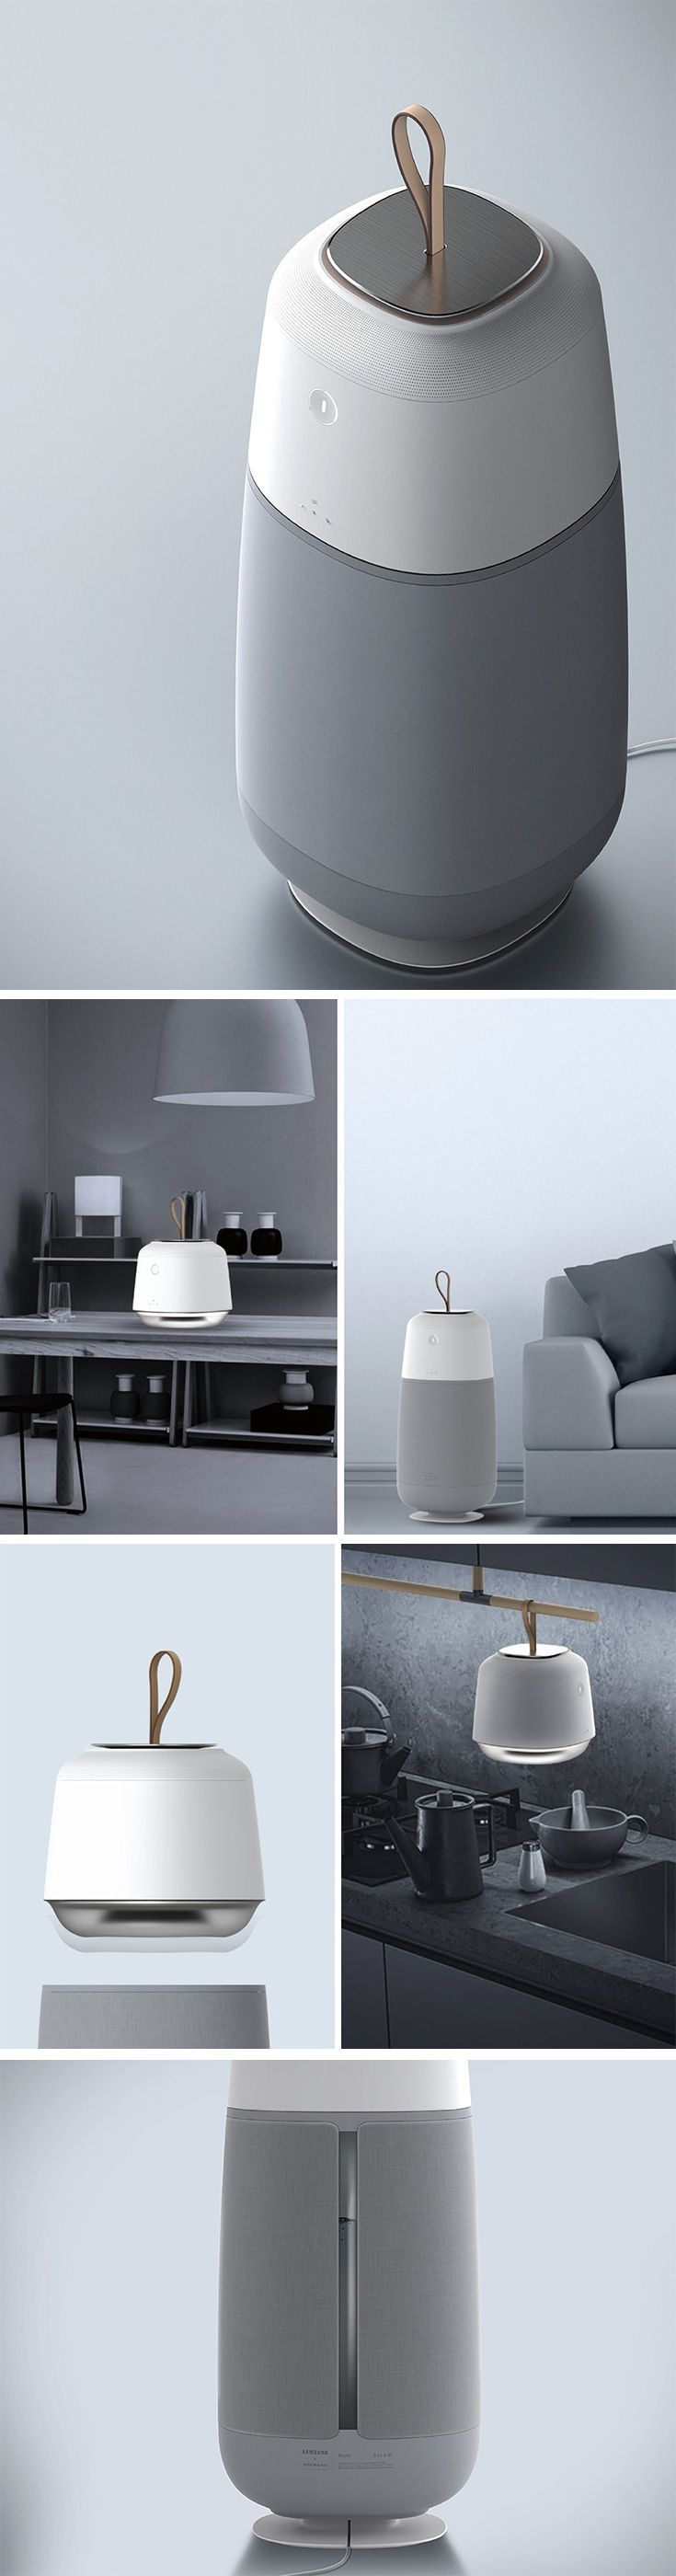 """In Swedish, """"Belyse"""" means """"to enlighten"""" and the Belyse Air Solution aims to do just that in your kitchen and other living spaces. This minimalist lighting and air purifying pod is capable of being carrying and placed almost anywhere but is specifically designed for use in the kitchen. Using a modern efficient filtration system, it also helps eliminate harmful byproducts of cooking like formaldehyde."""